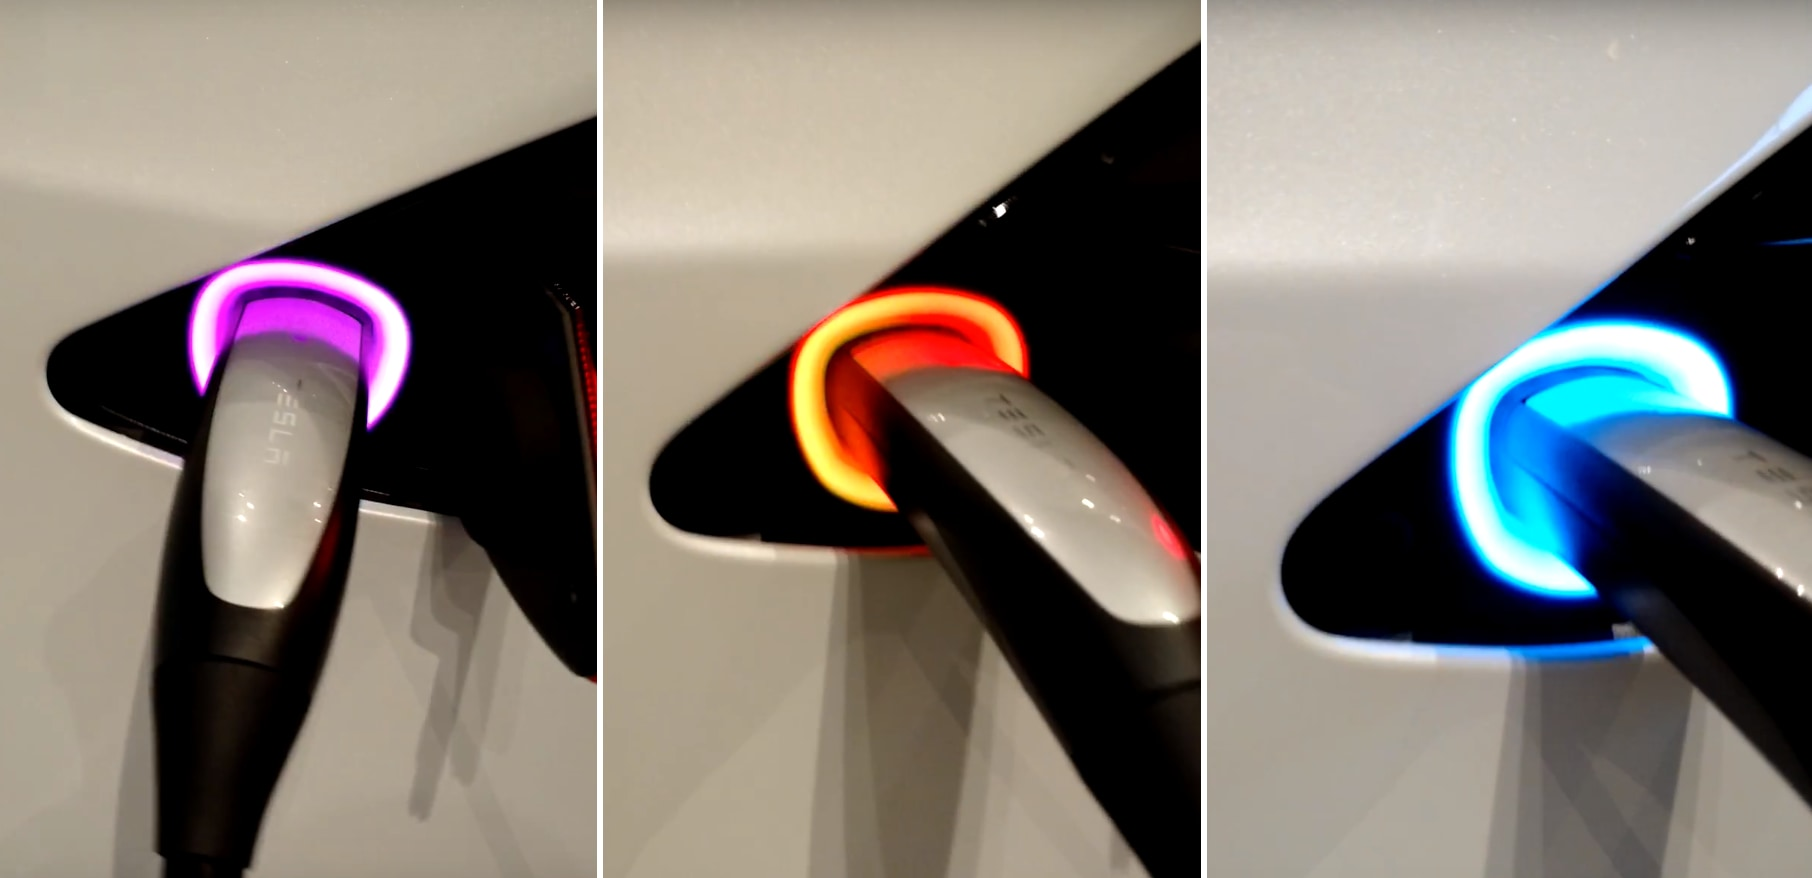 Tesla Chargeport fades in and out in different colors